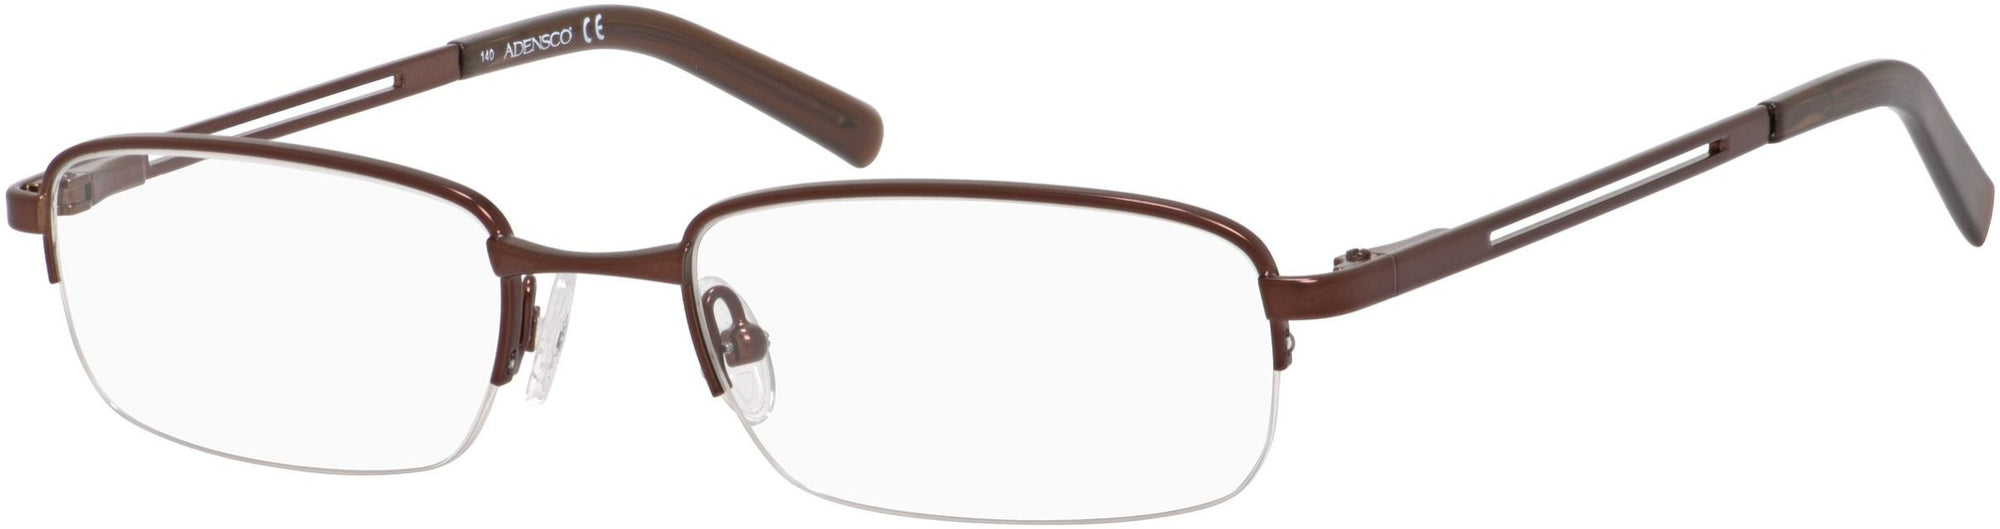 Adensco AD 104 Rectangular Eyeglasses 01D1-01D1  Brown (00 Demo Lens)